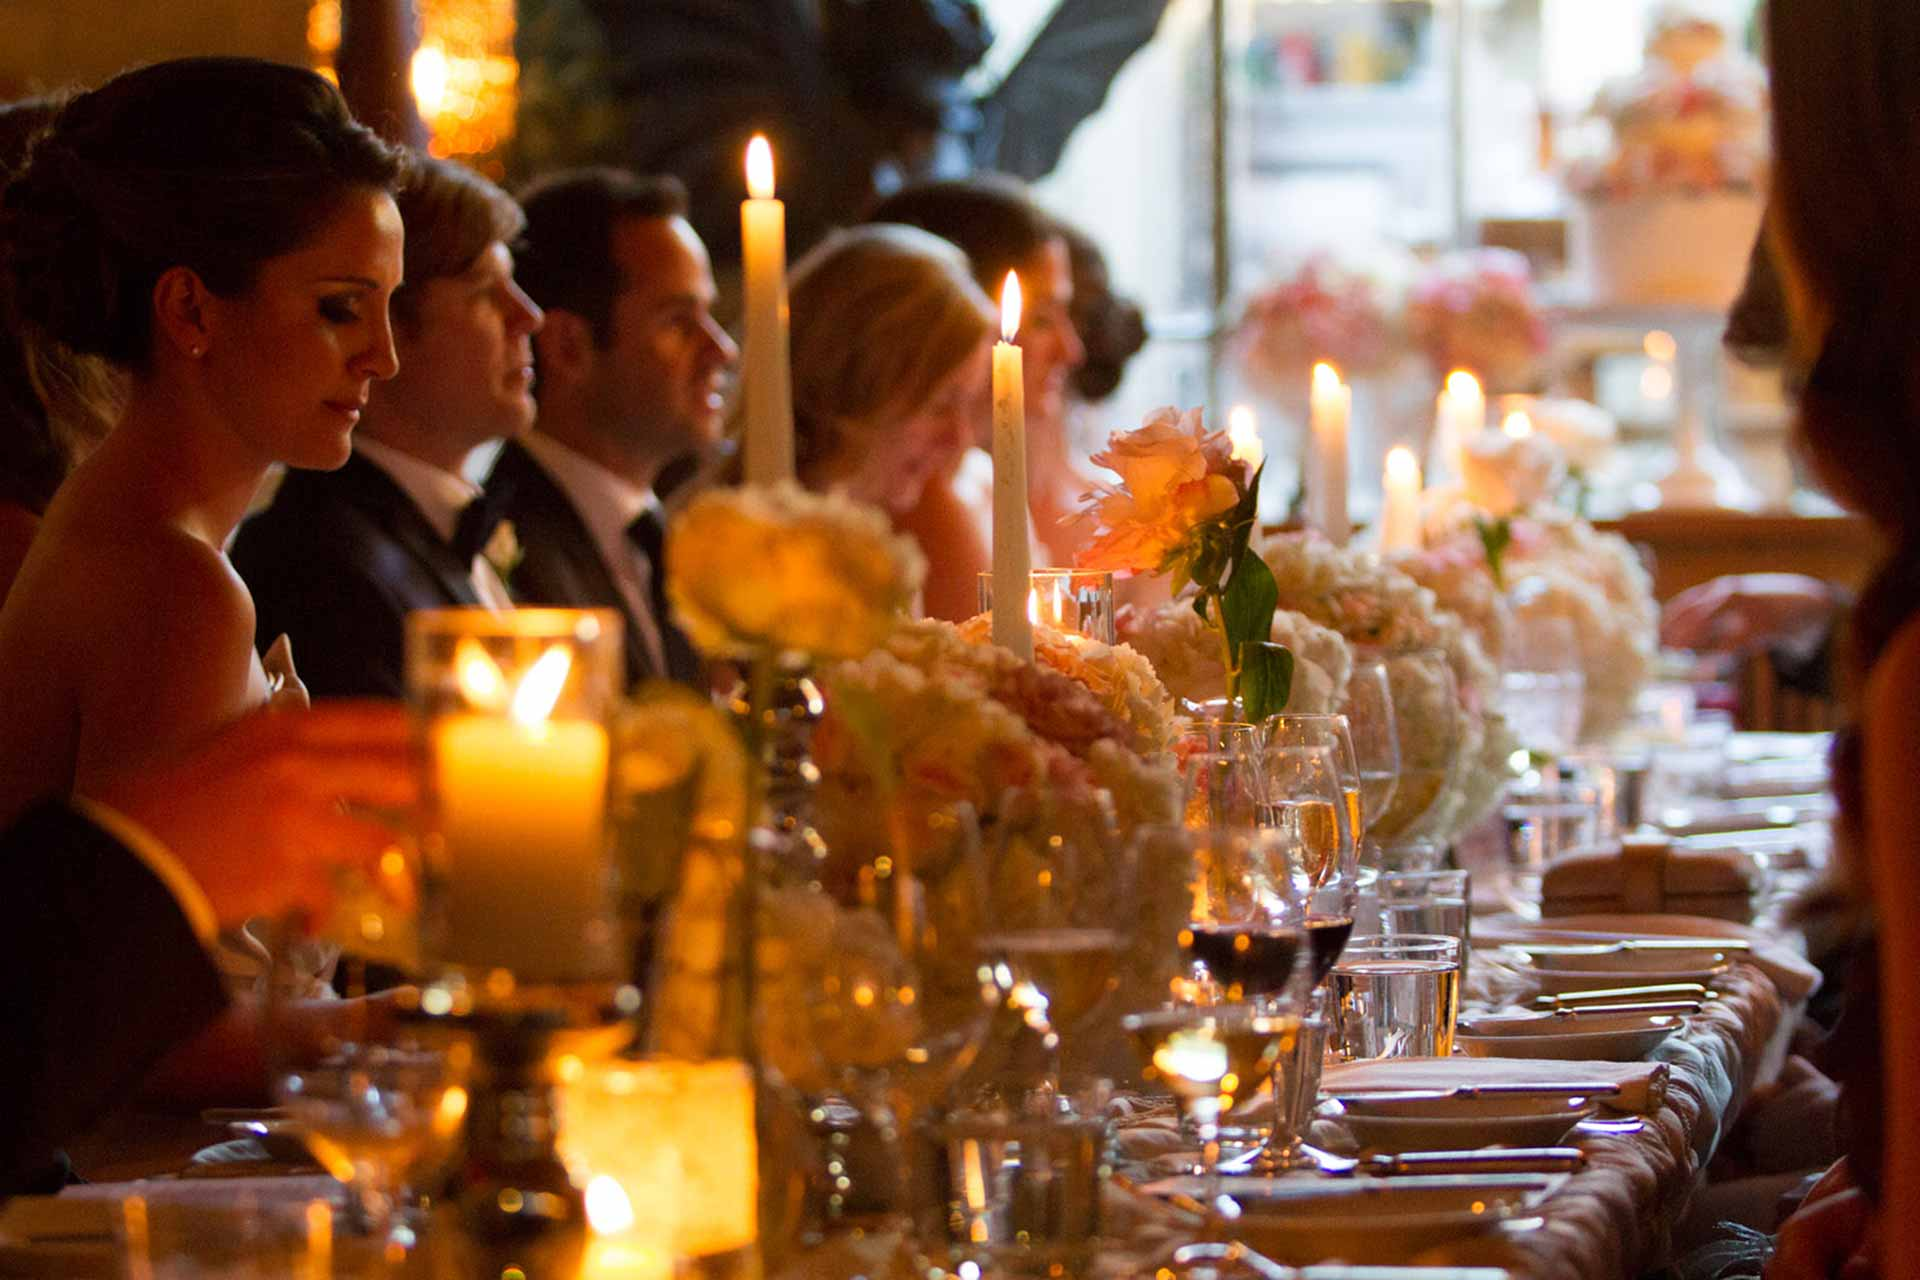 Toronto Wedding Venue - Elegant Restaurant Reception - Tablescape